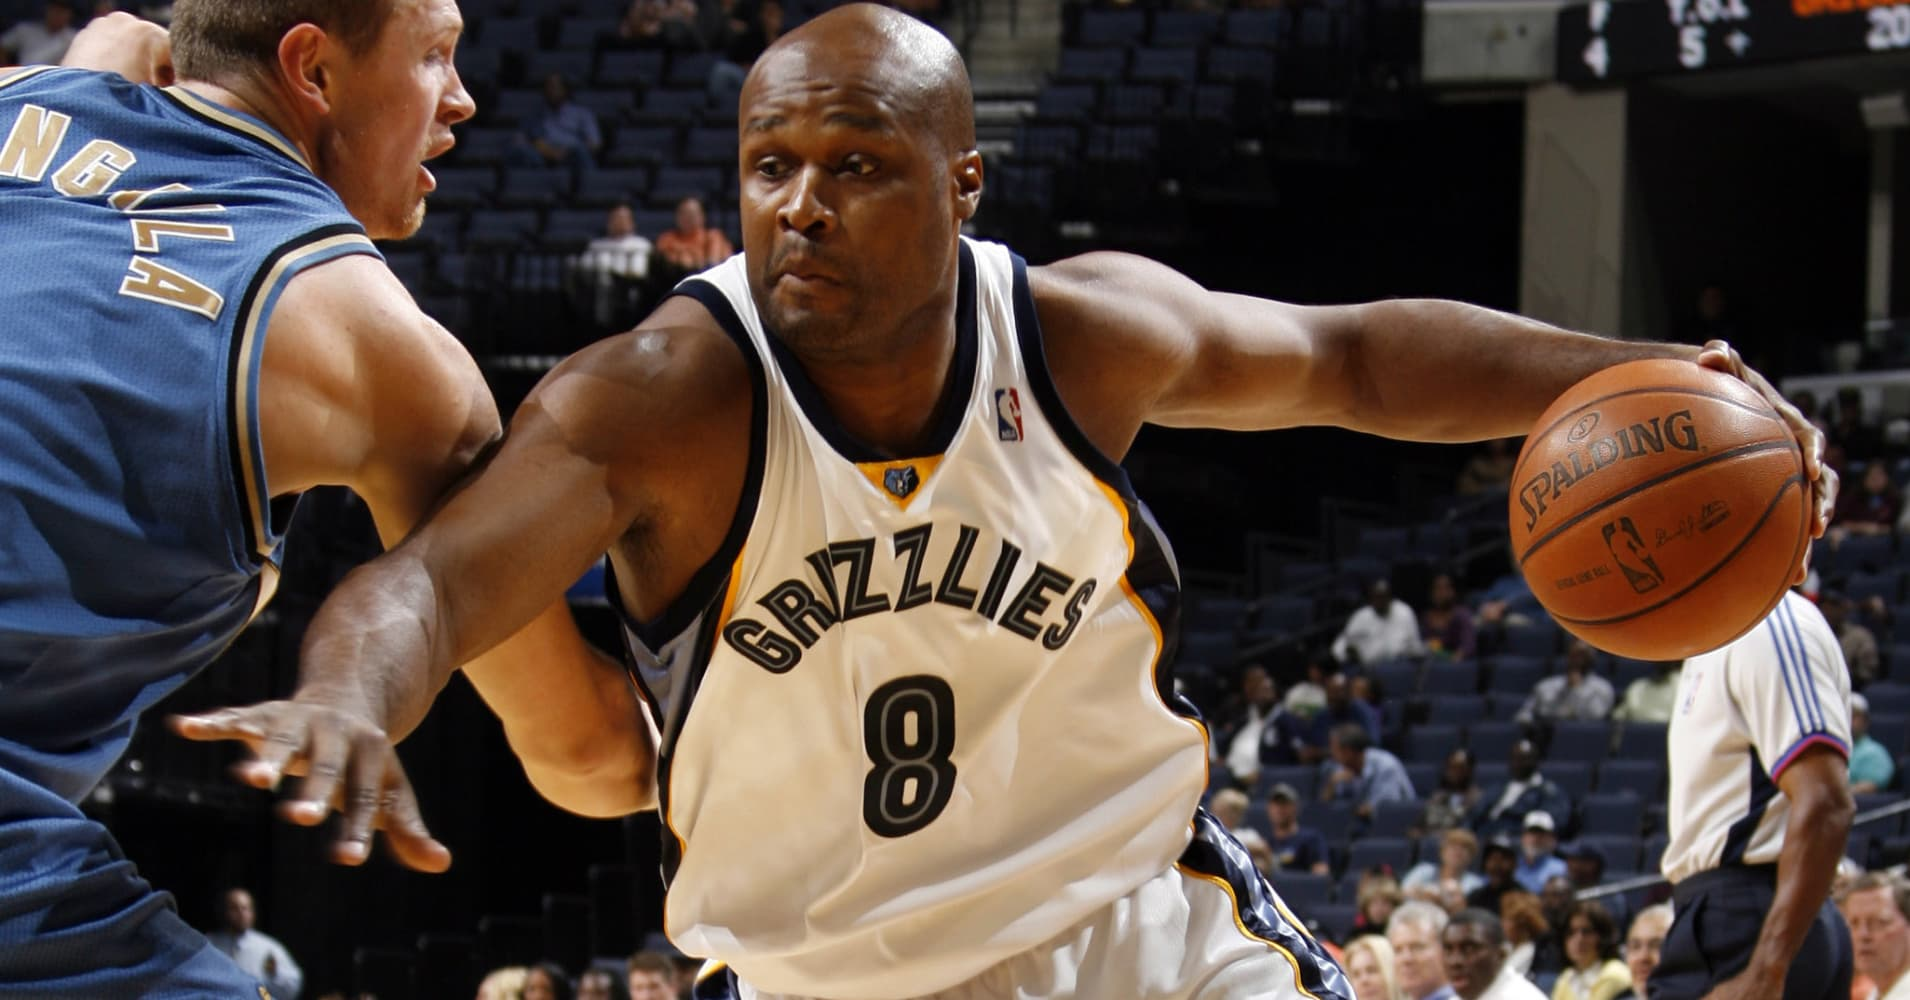 Antoine Walker #8 of the Memphis Grizzlies drives around Darius Songaila #9 of the Washington Wizards on October 8, 2008 at the FedExForum in Memphis, Tennessee.